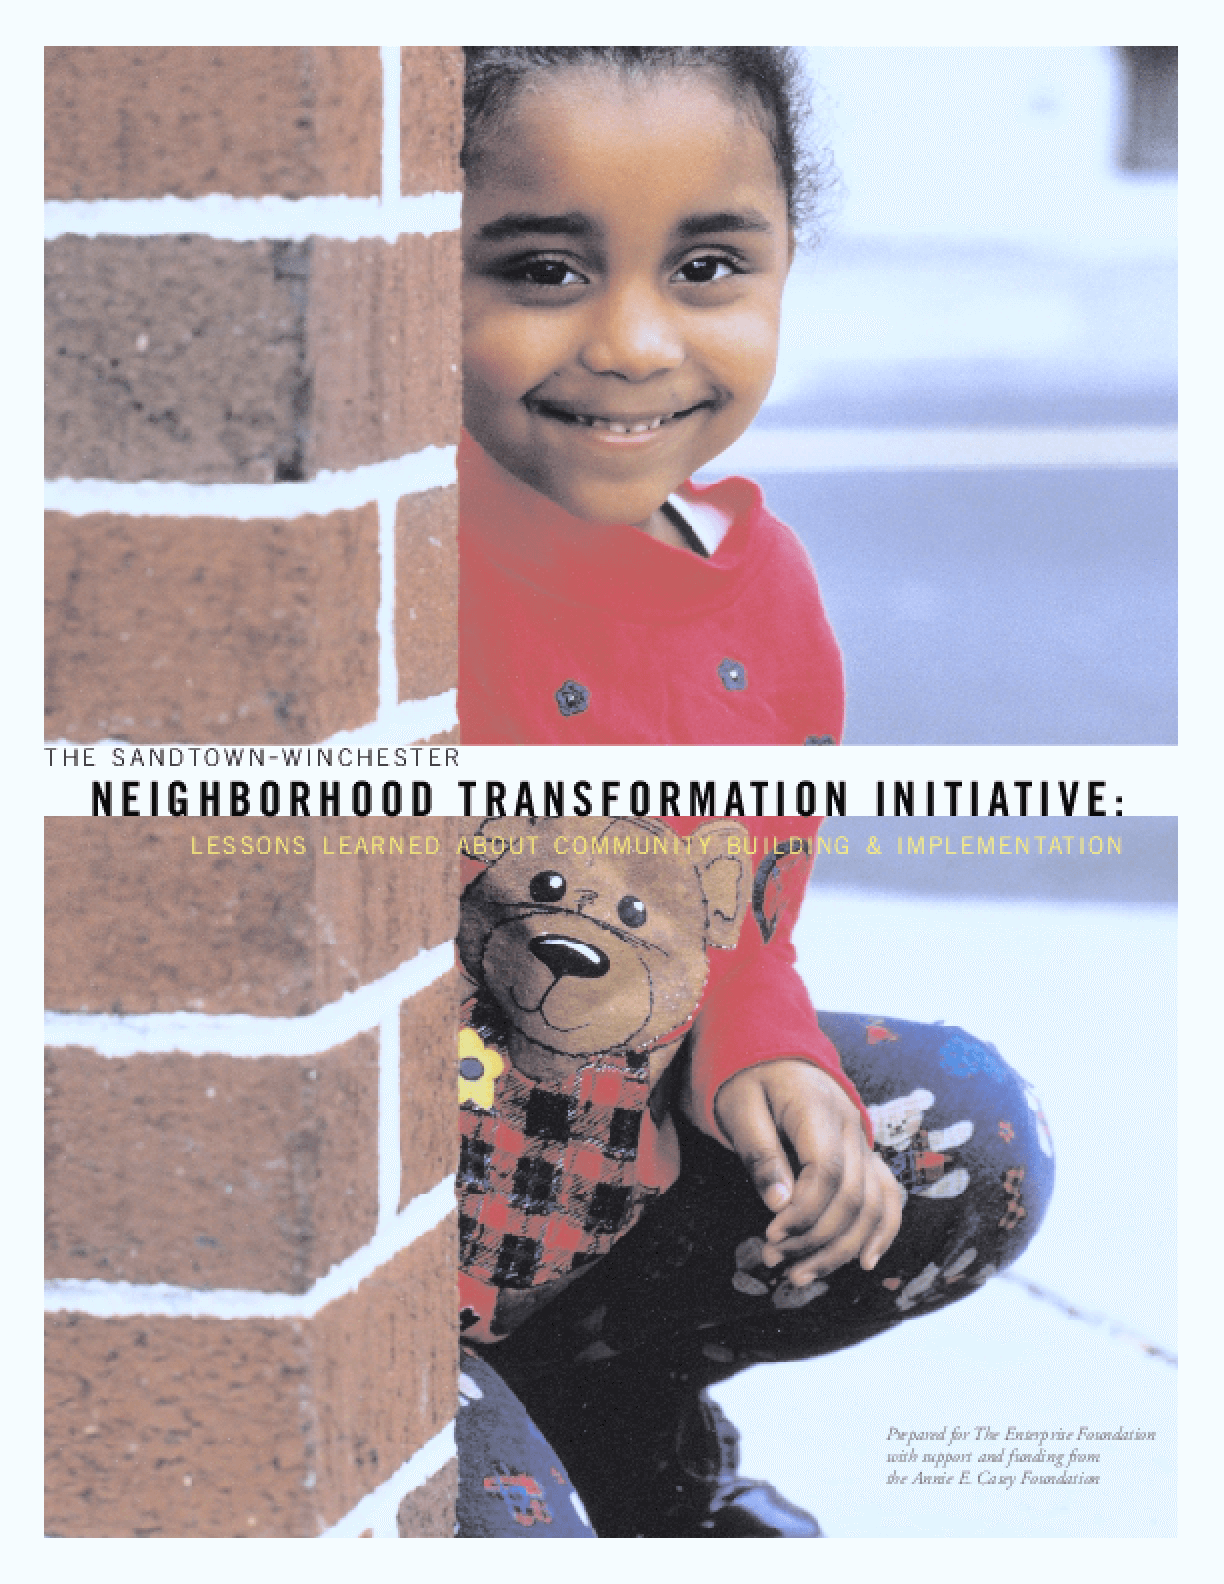 The Sandtown-Winchester Neighborhood Transformation Initiative: Lessons Learned About Community Building & Implementation